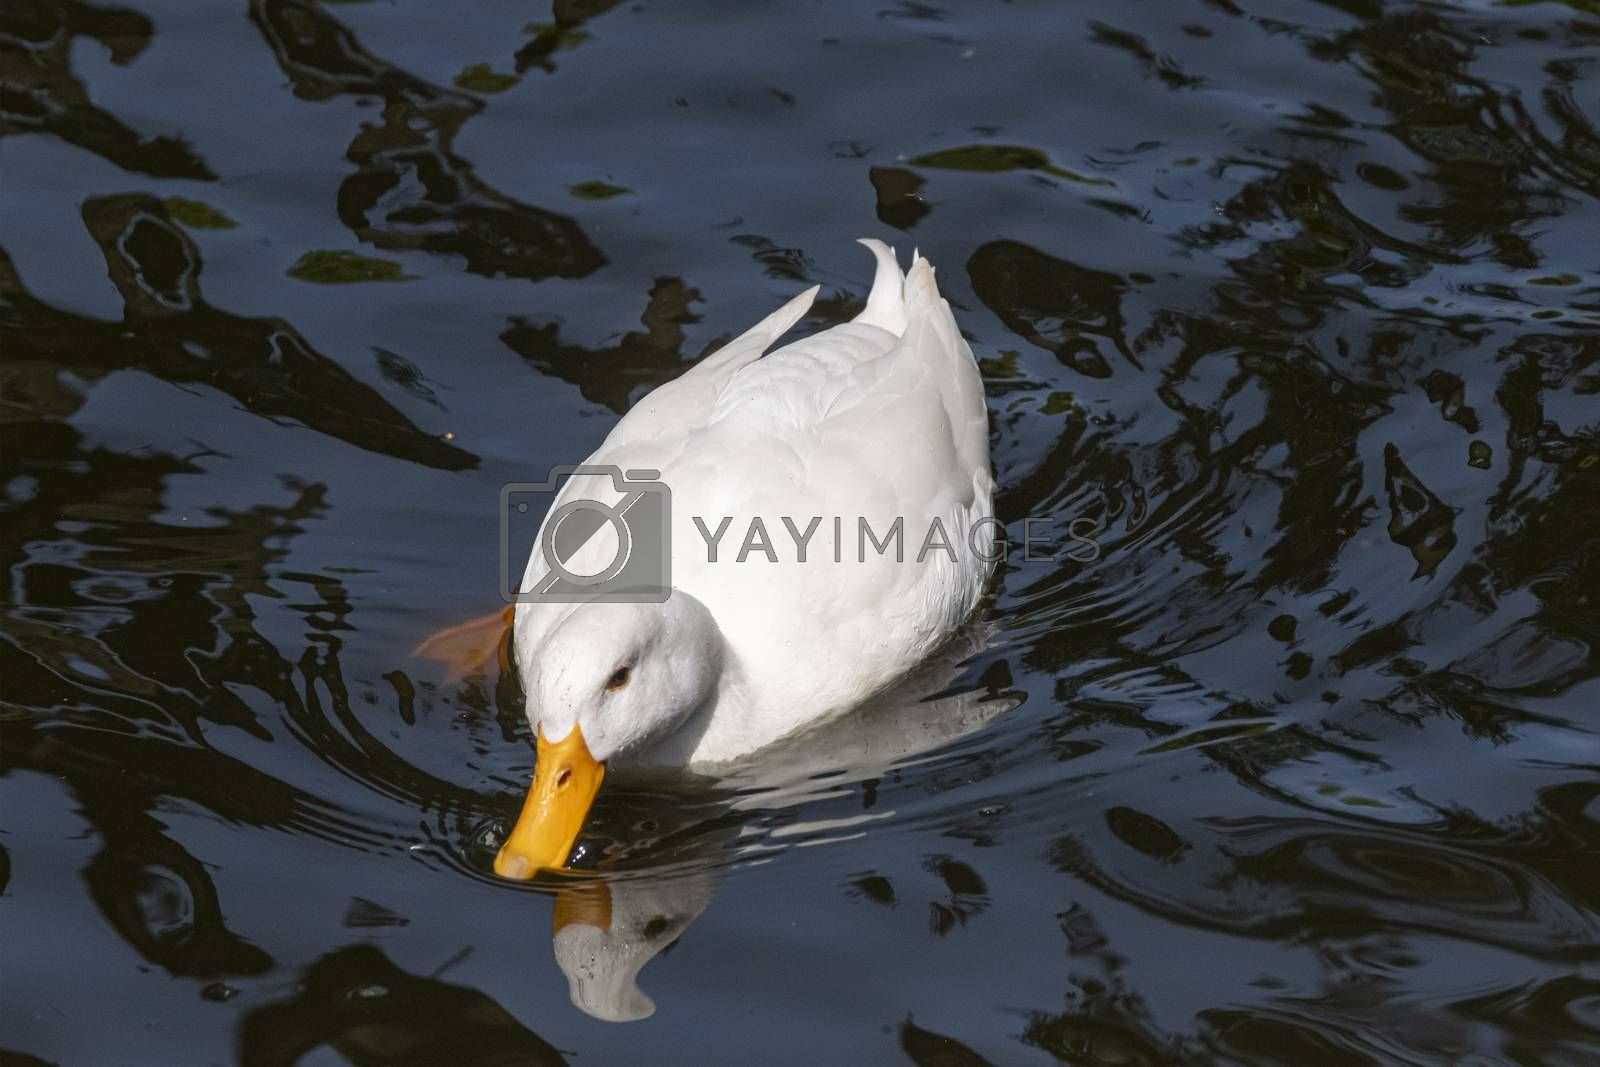 Large white heavy duck also known as America Pekin Duck, the duck swims in dark water with reflections.